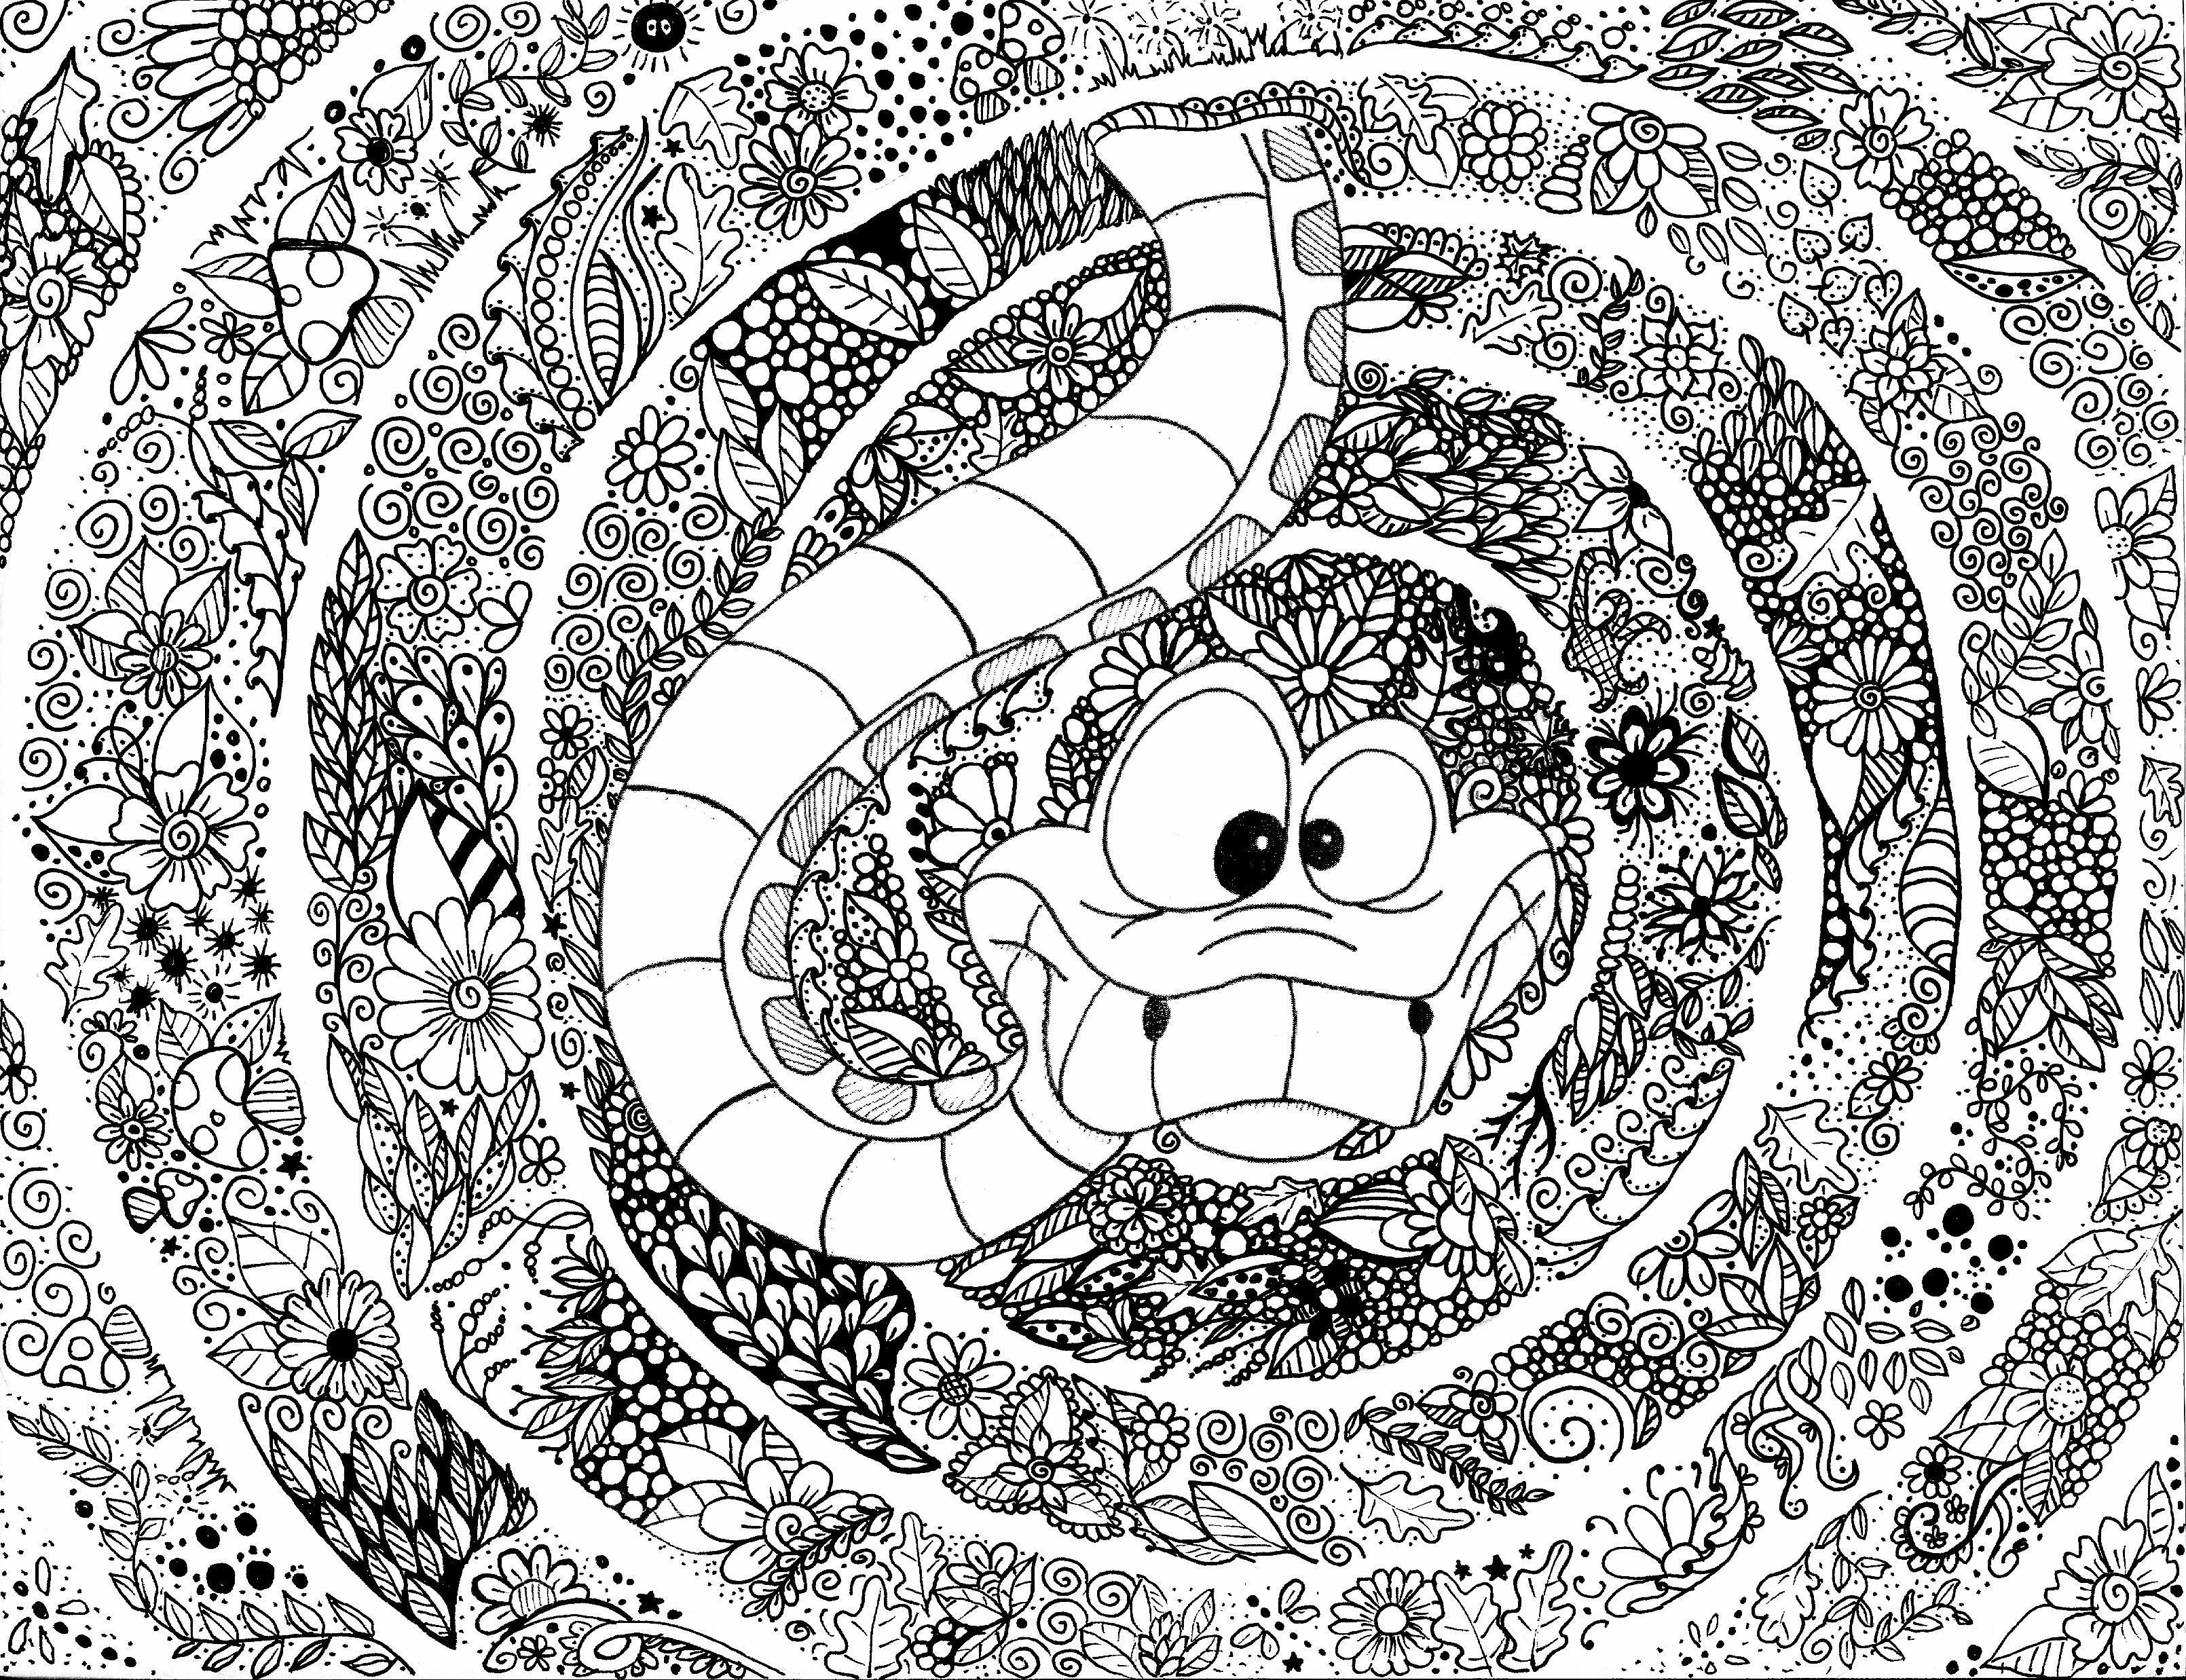 Disney Coloriage Colouring Coloring Serpent Snake Zendoodle